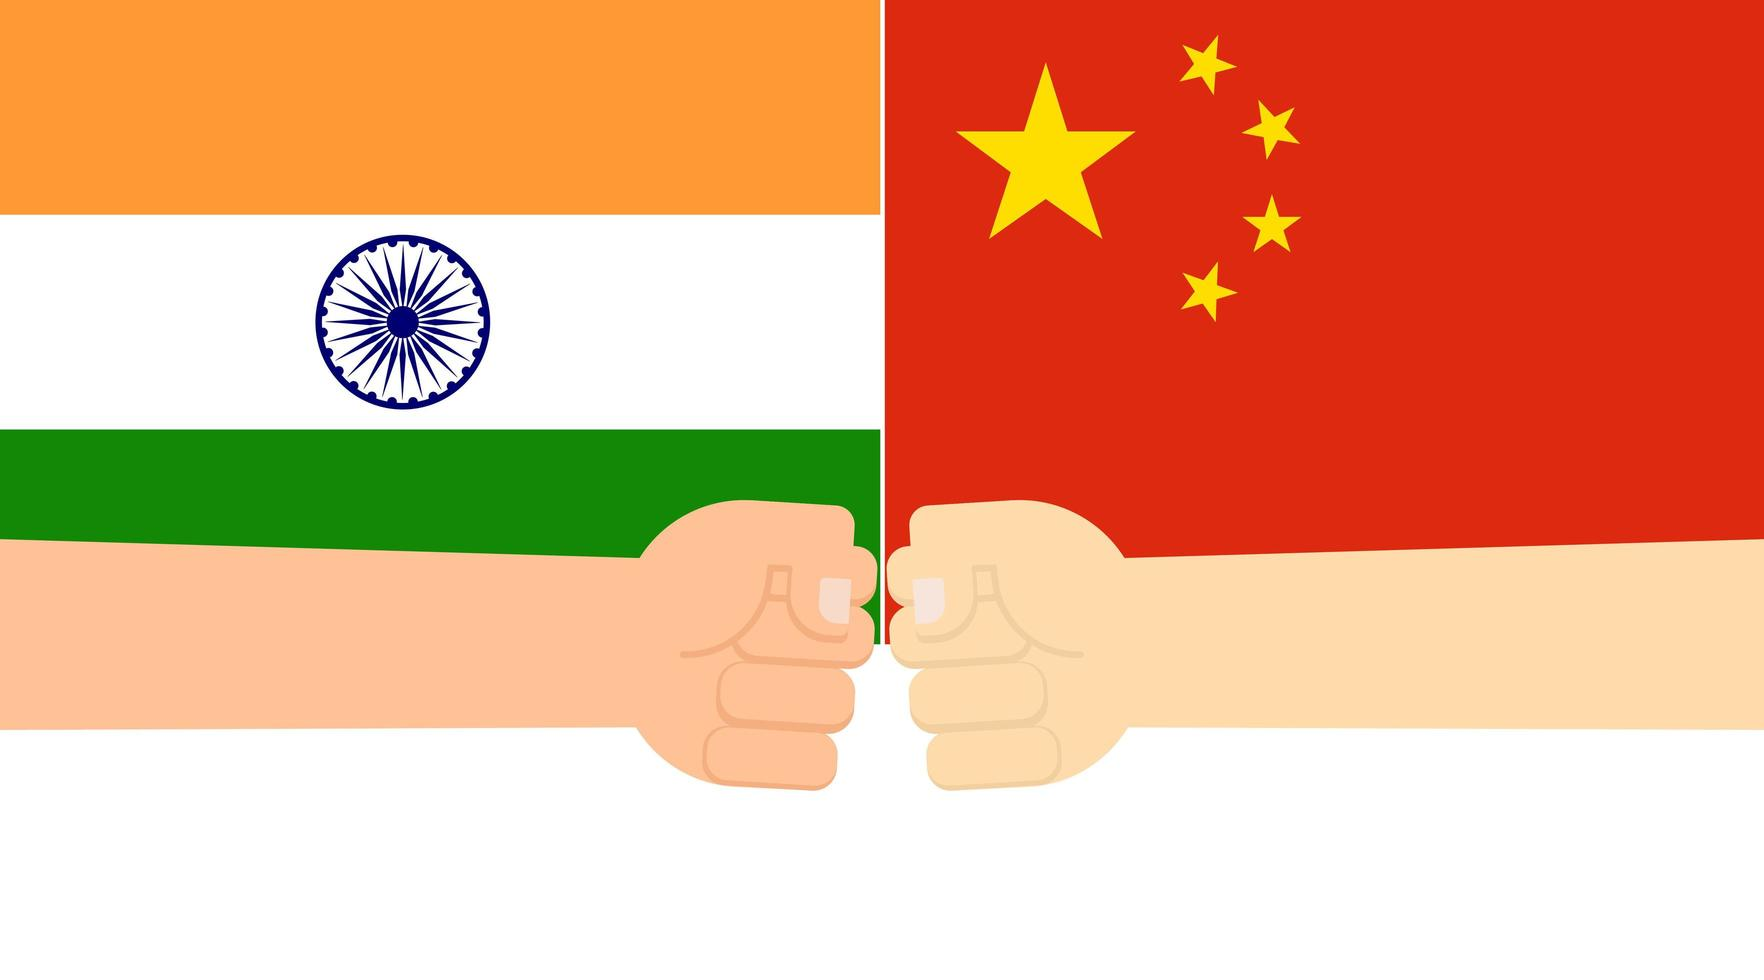 Fist Hands On India And China Flags Download Free Vectors Clipart Graphics Vector Art